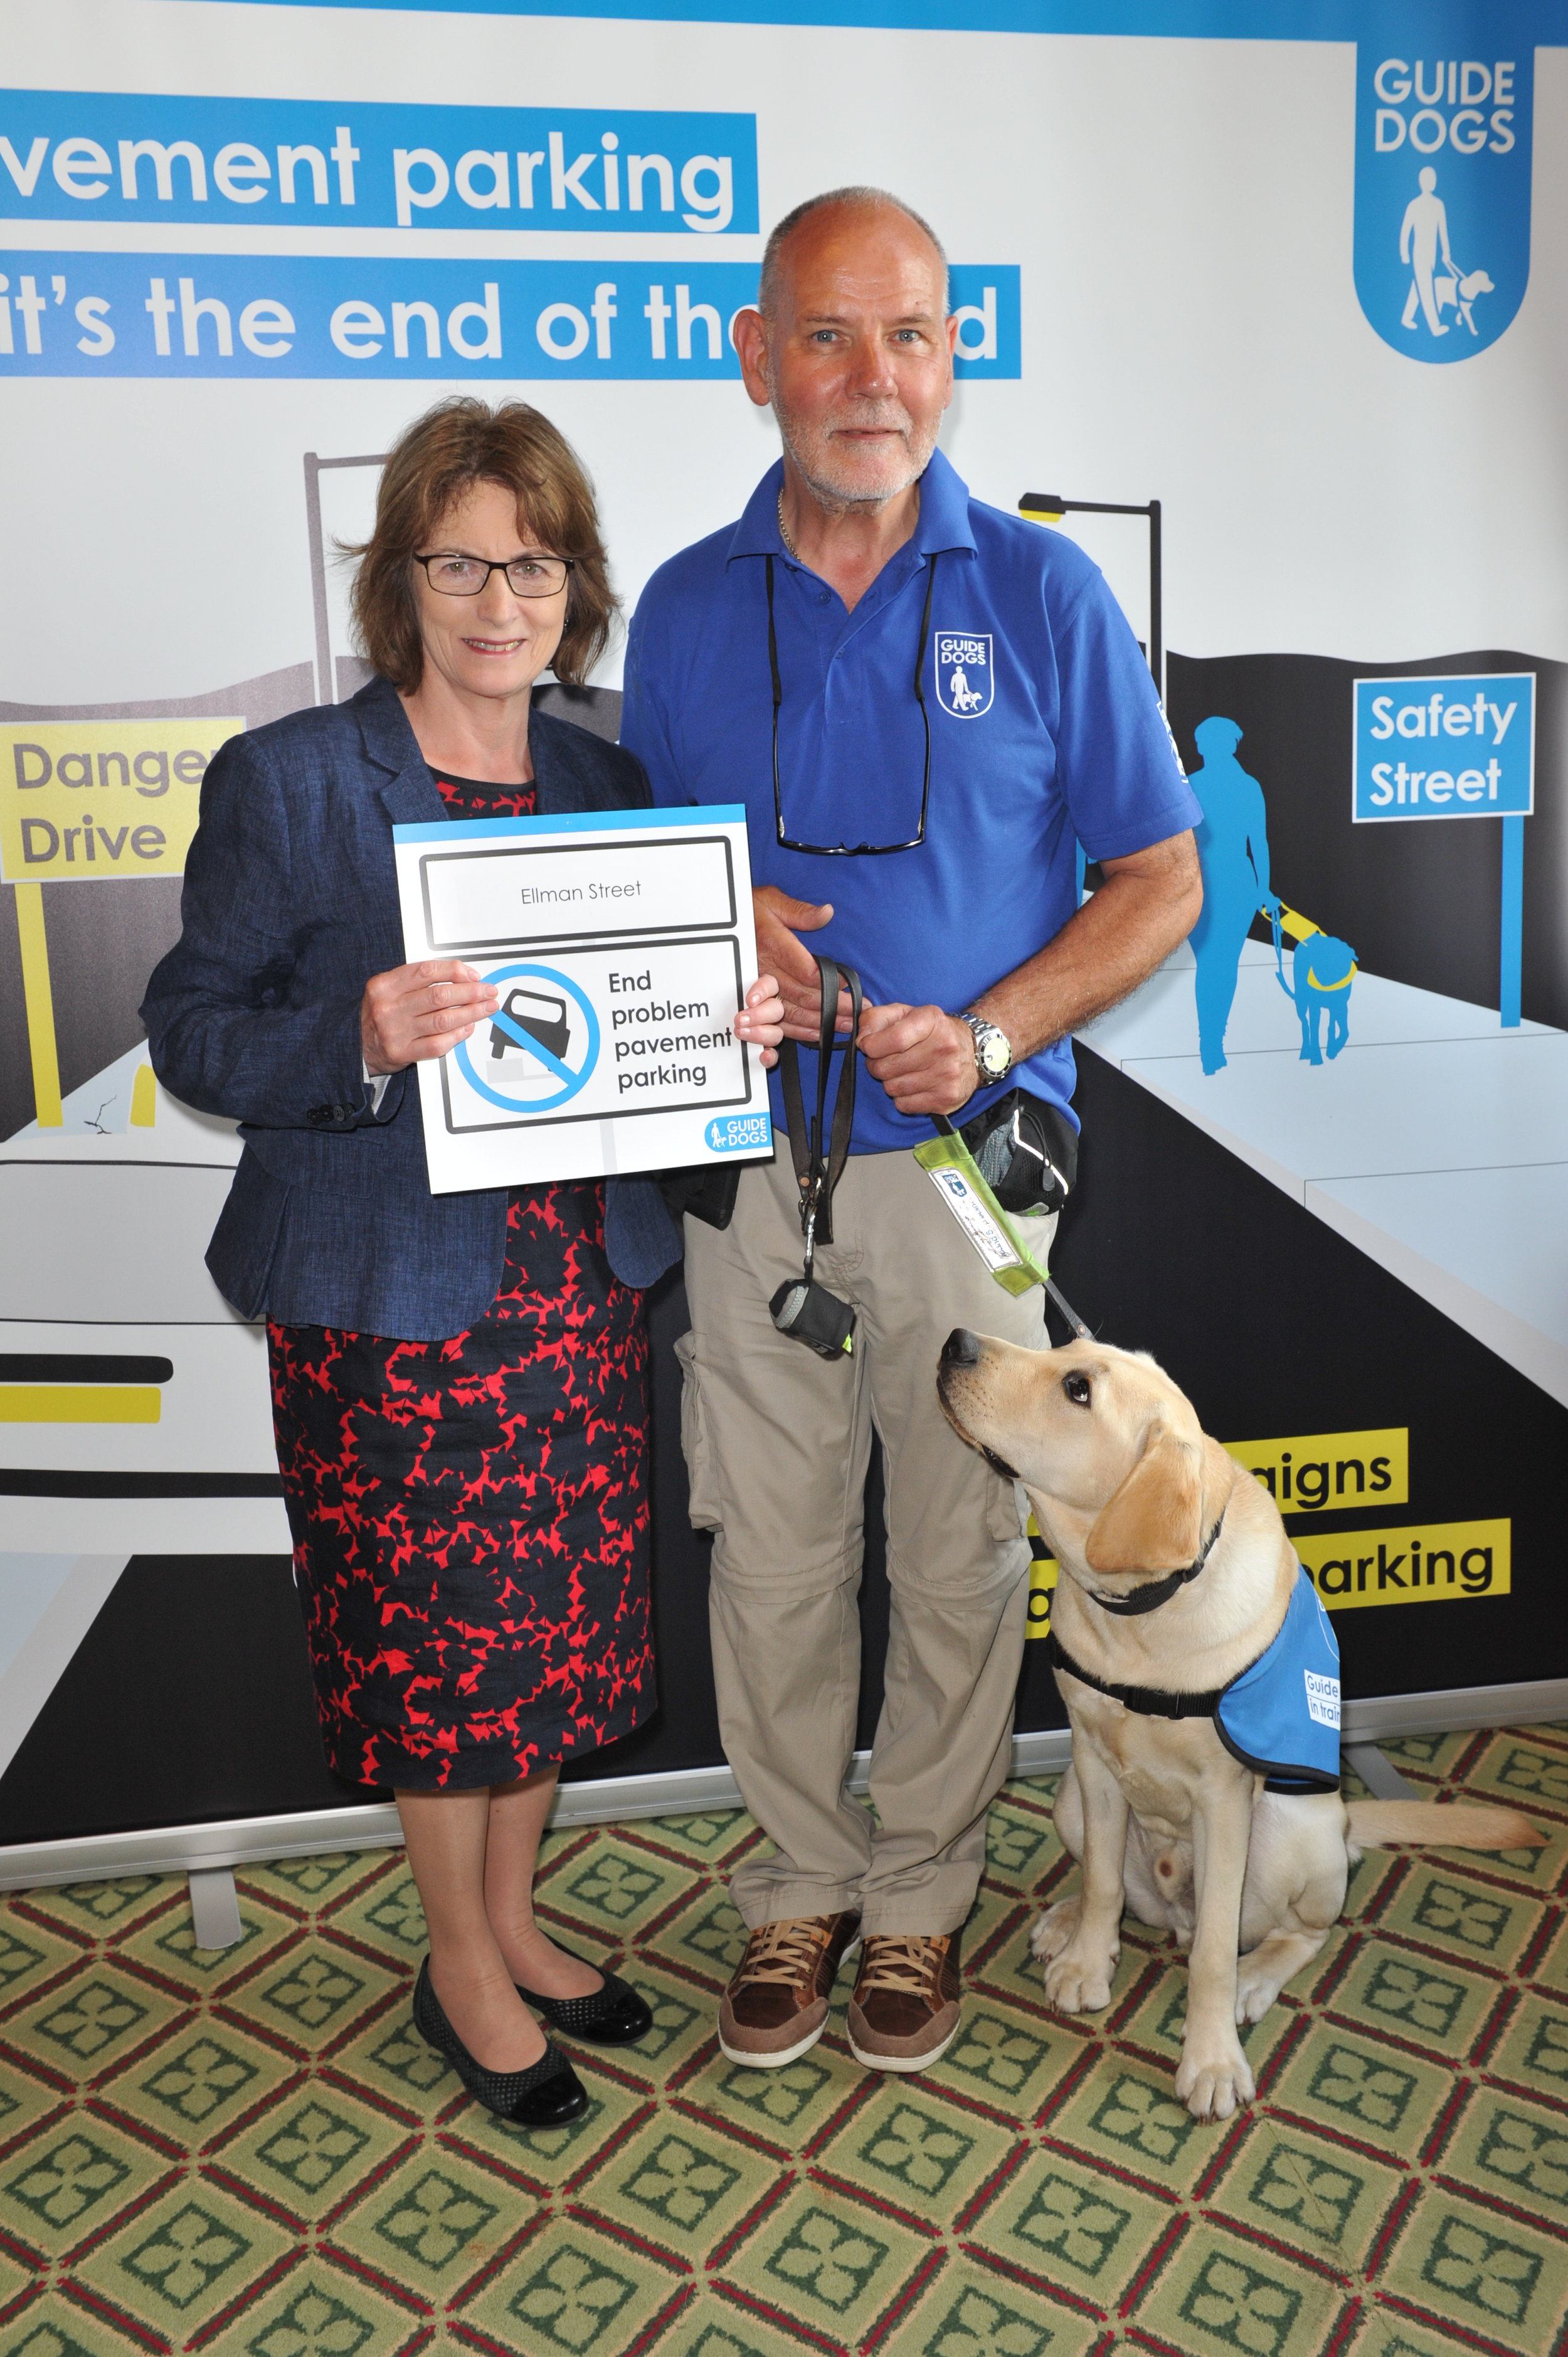 Supporting Guide Dogs UK's campaign to stop pavement parking